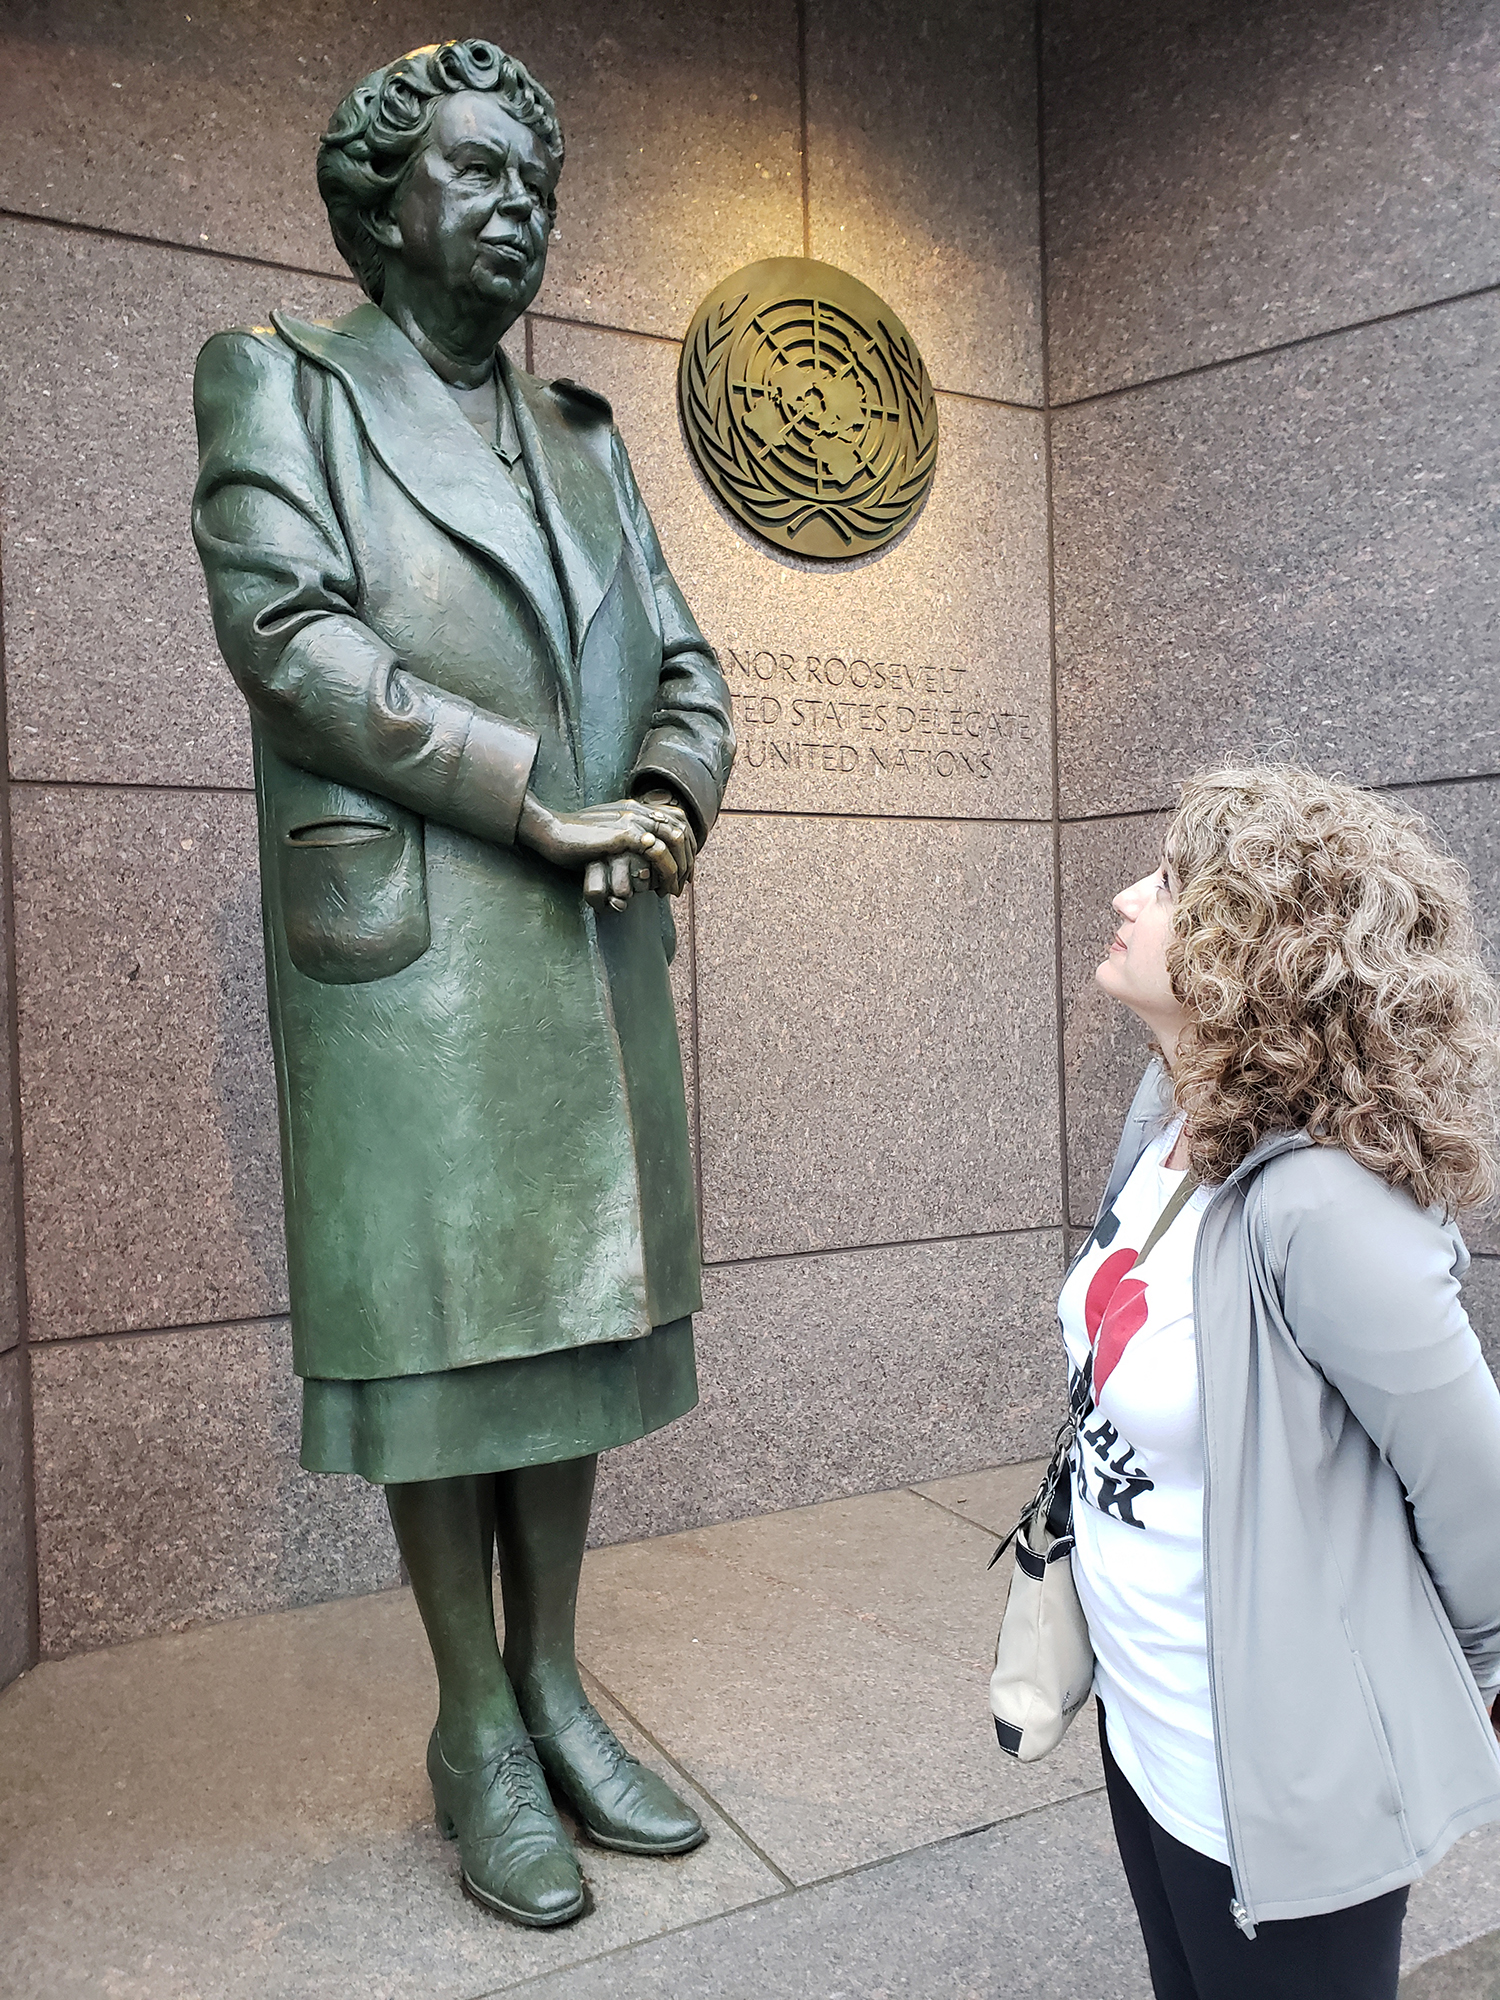 Alyssa Reynolds looks to Eleanor Roosevelt